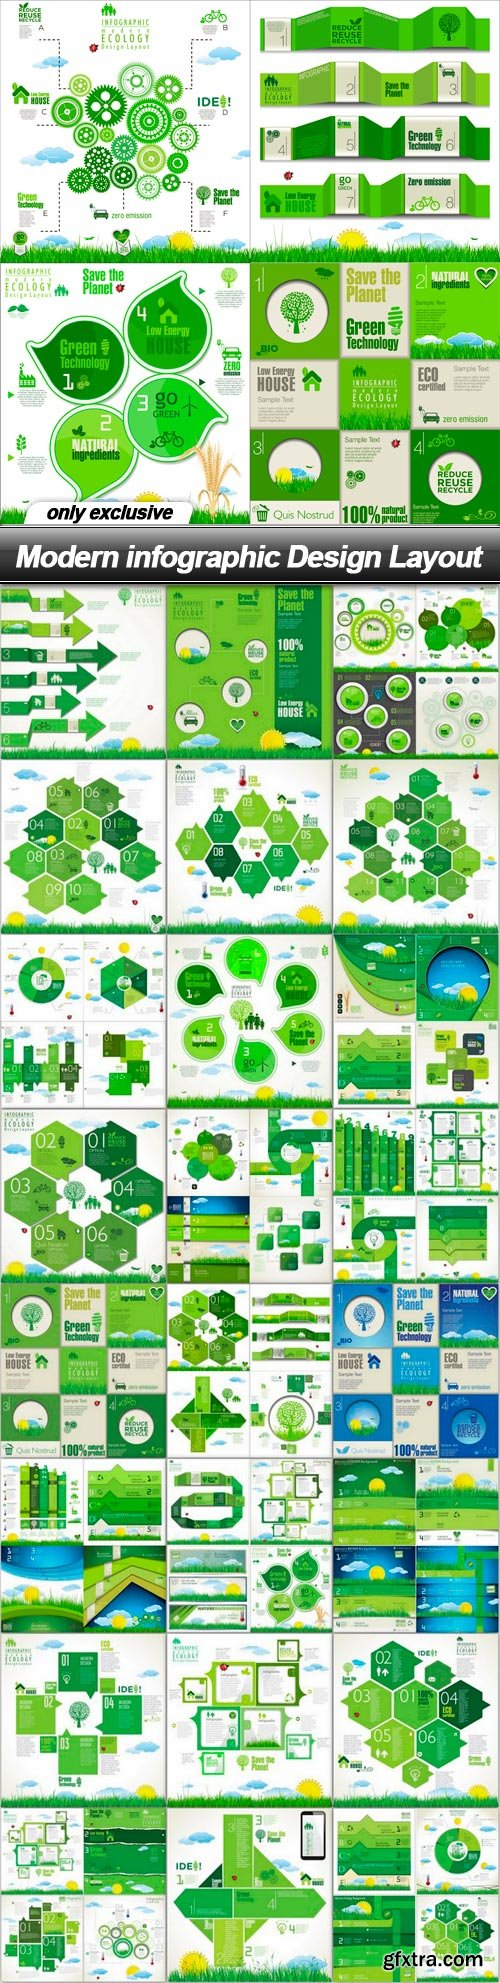 Modern infographic Design Layout - 25 EPS